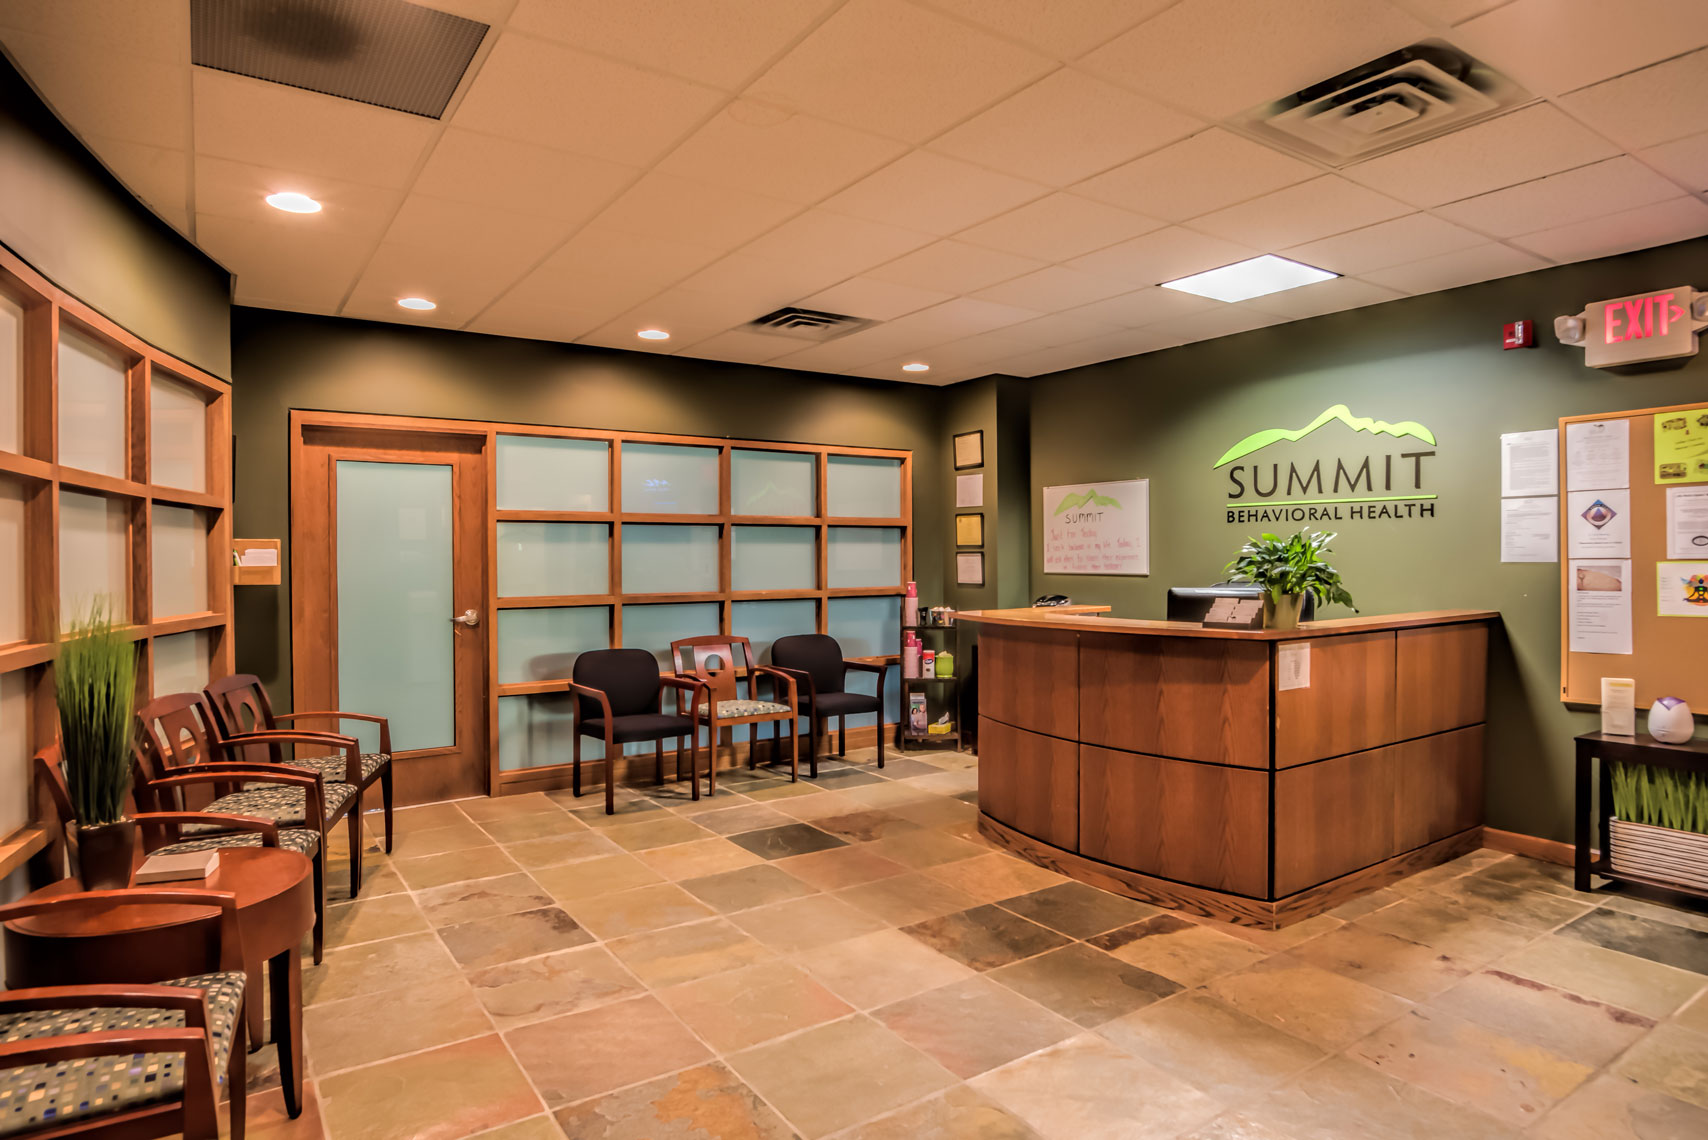 13-Summit-Lobby-Princeton-Junction